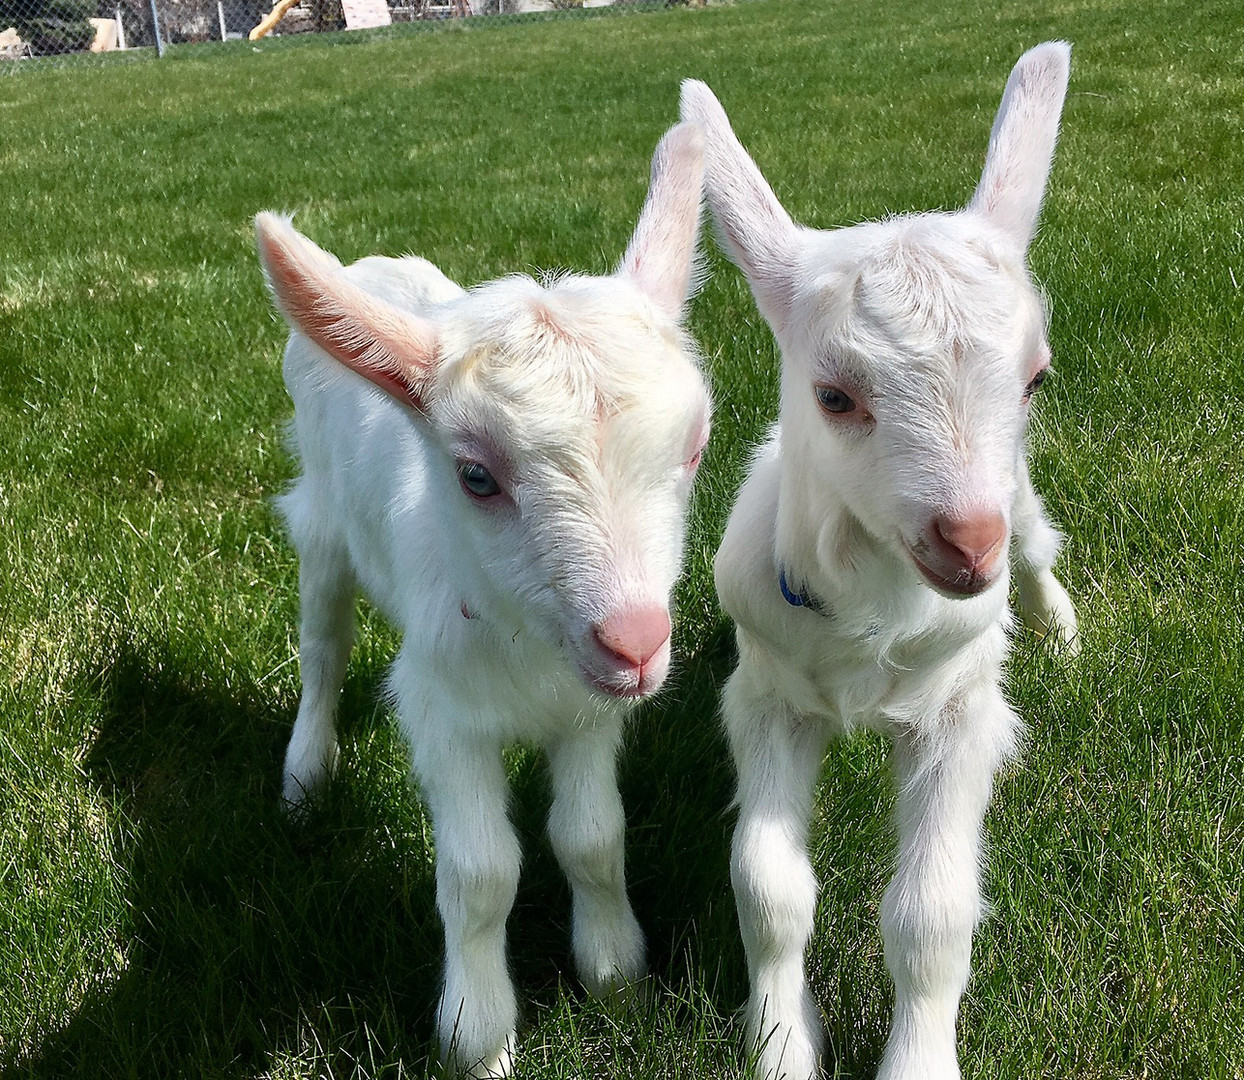 Our goats, Wattles (blue) and Flash (red)